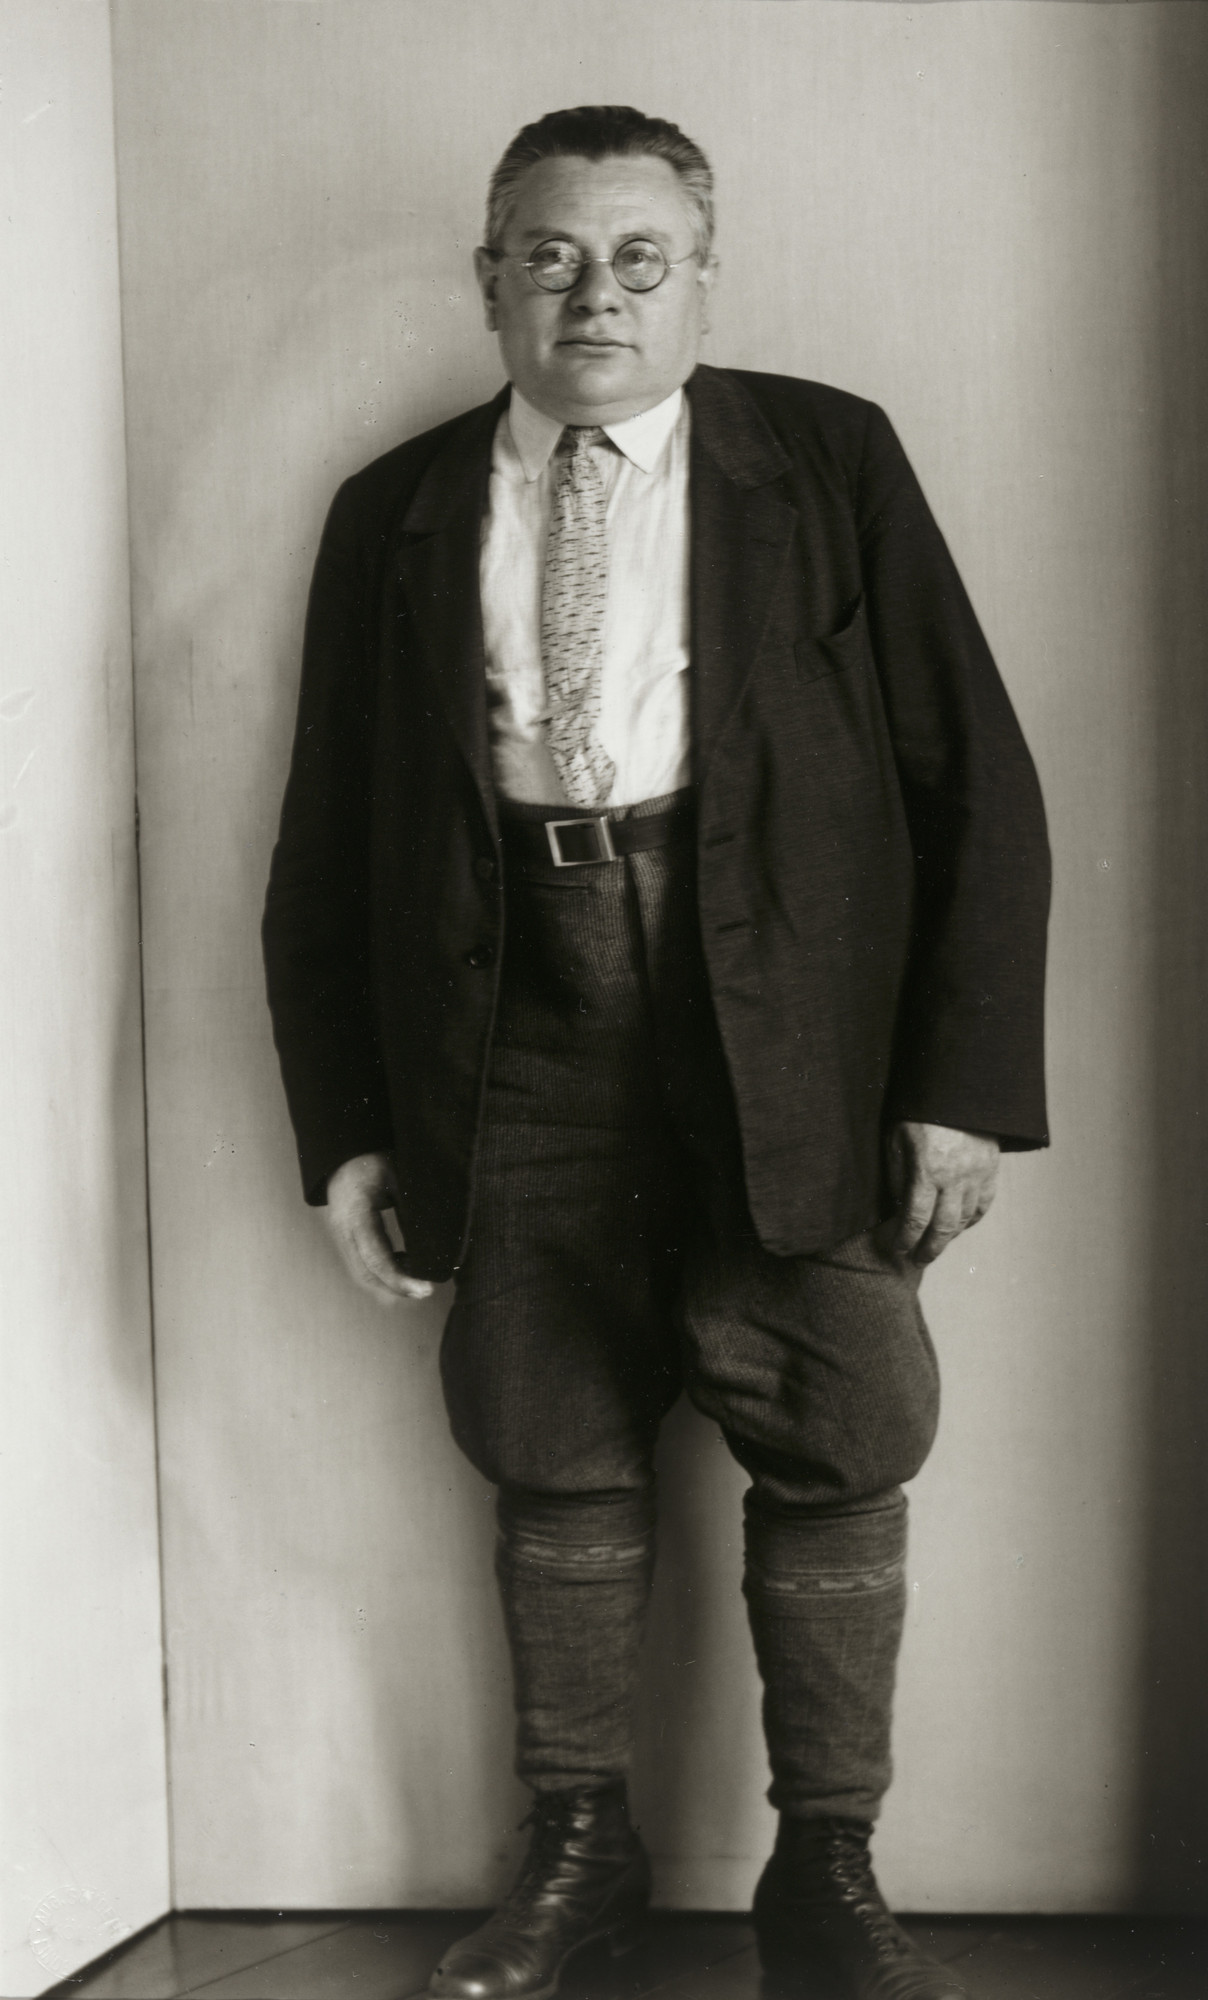 August Sander. Co-founder of the SAP, Socialist Workers Party [Heinrich Brandler]. c. 1931